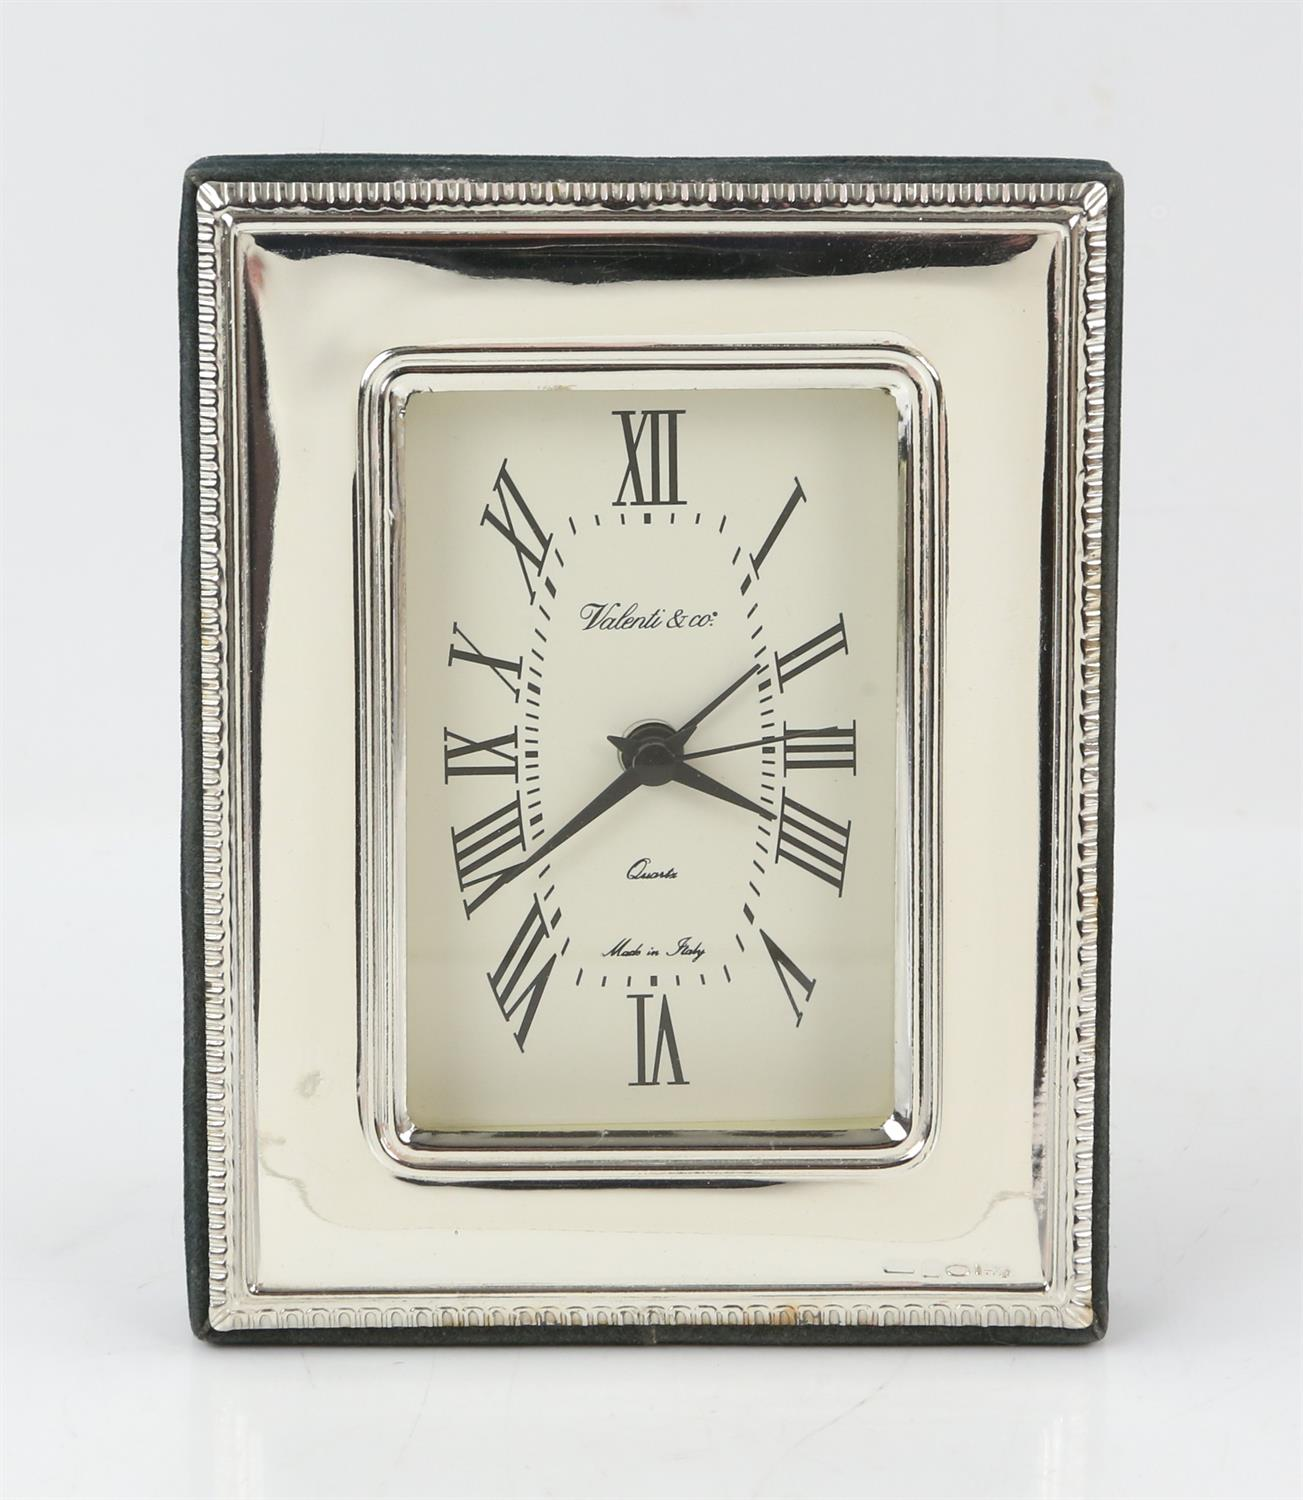 Continental silver framed clock by Valenti and Co - Image 2 of 4